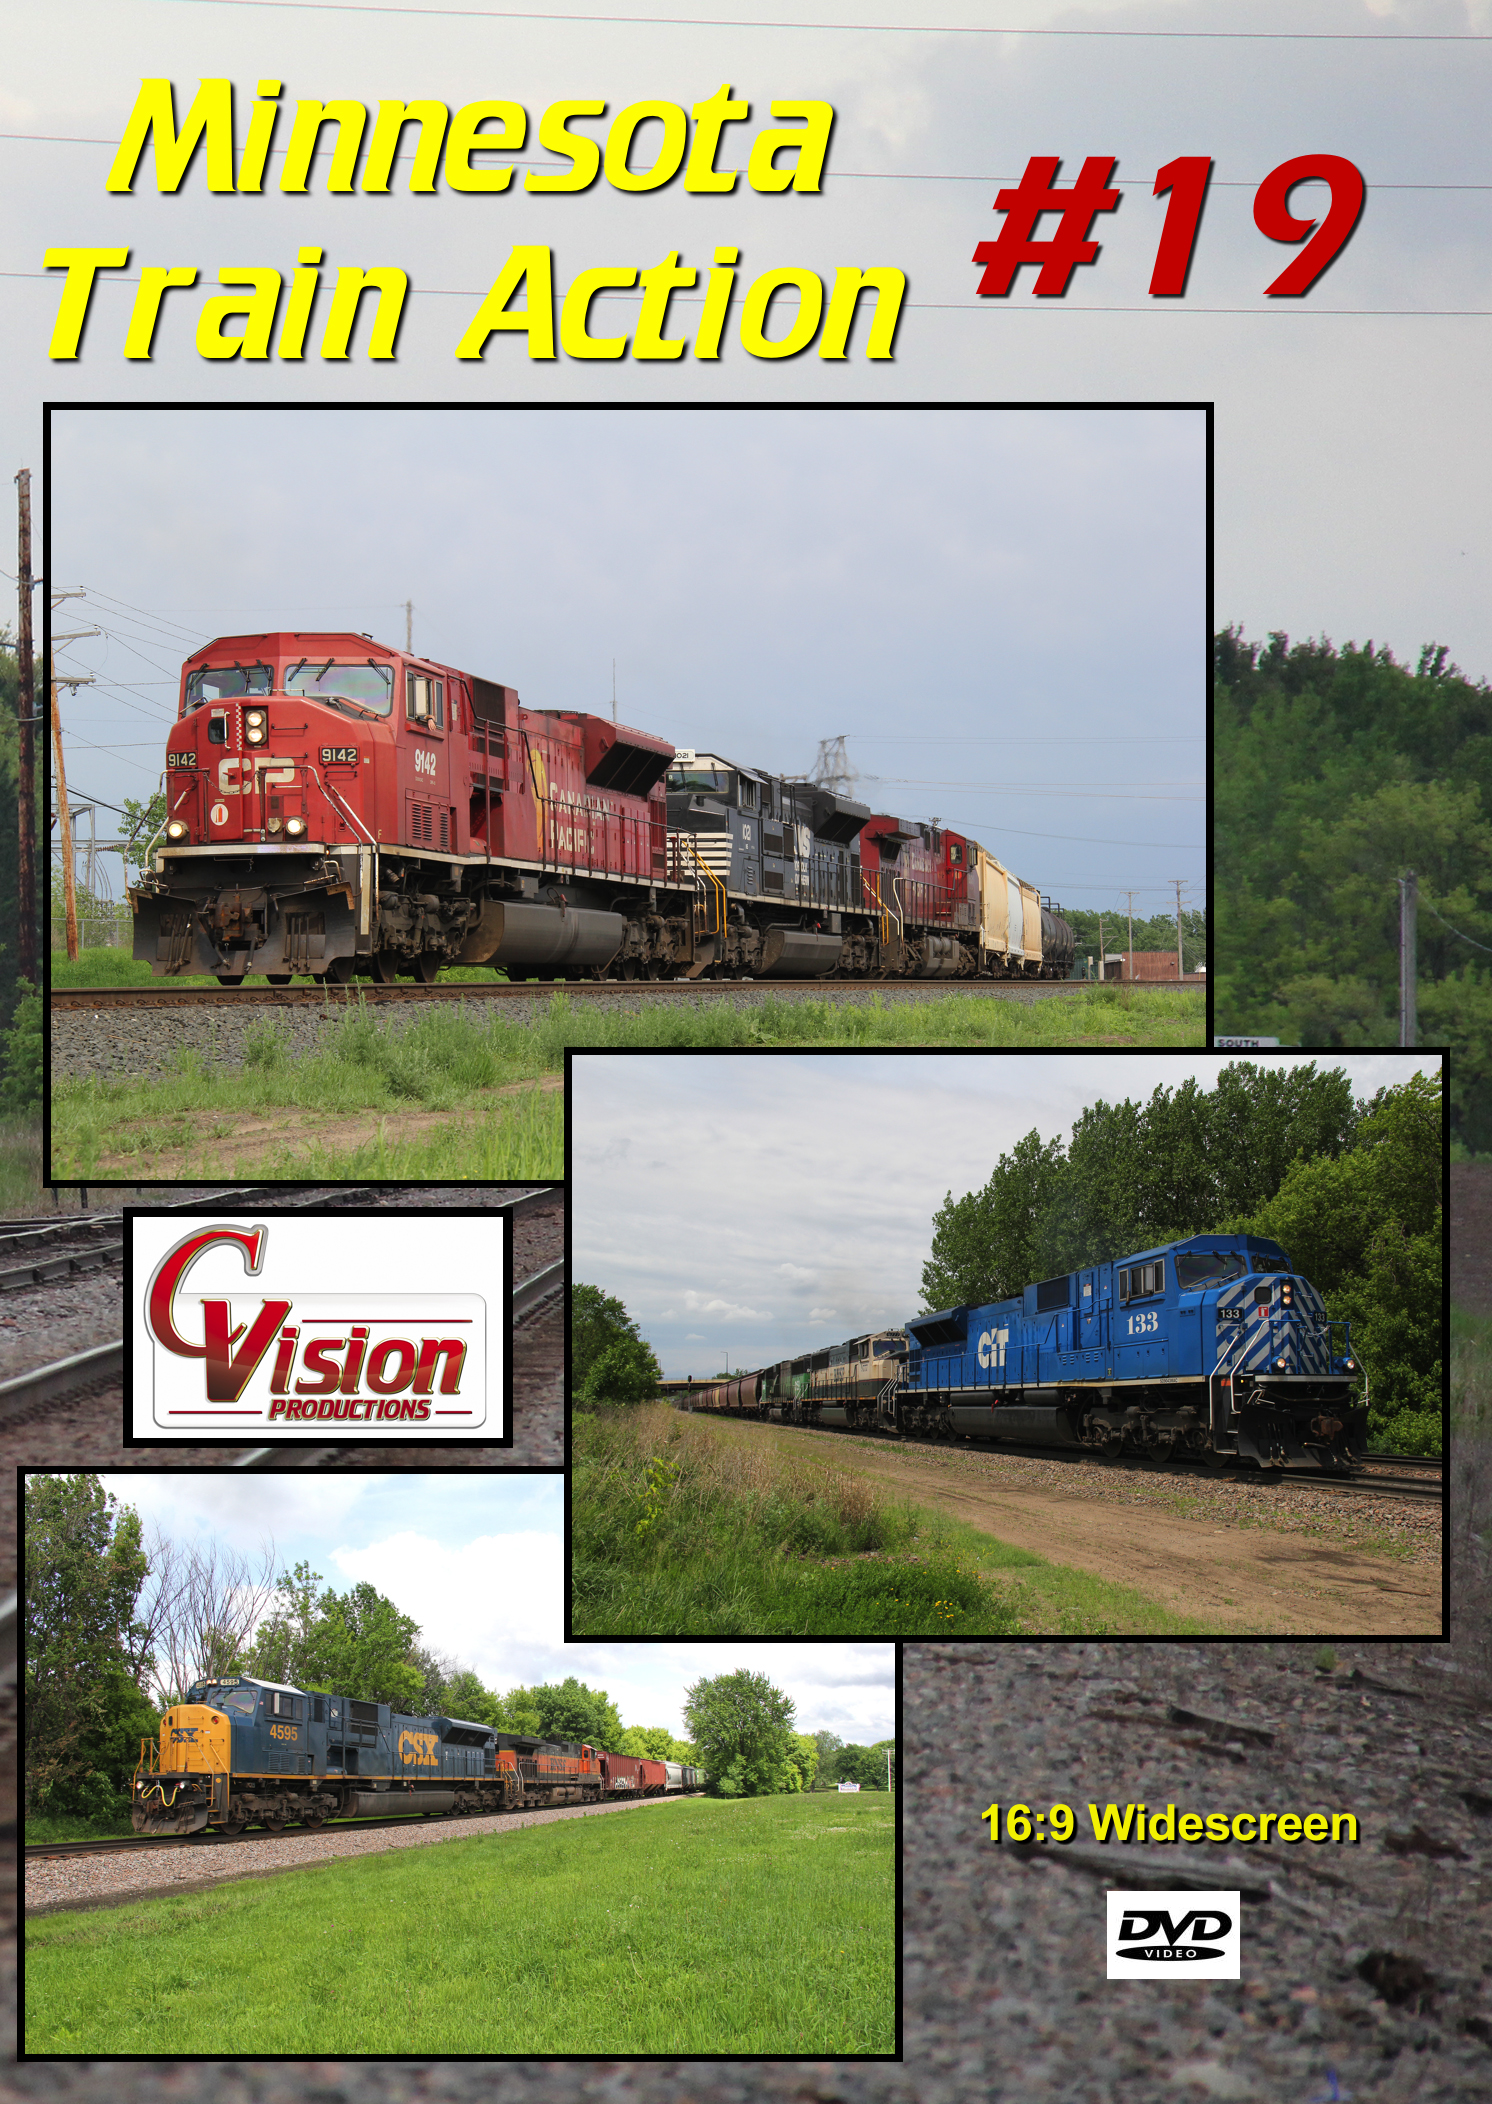 Minnesota Train Action Number 19 DVD C Vision Productions MTA19DVD